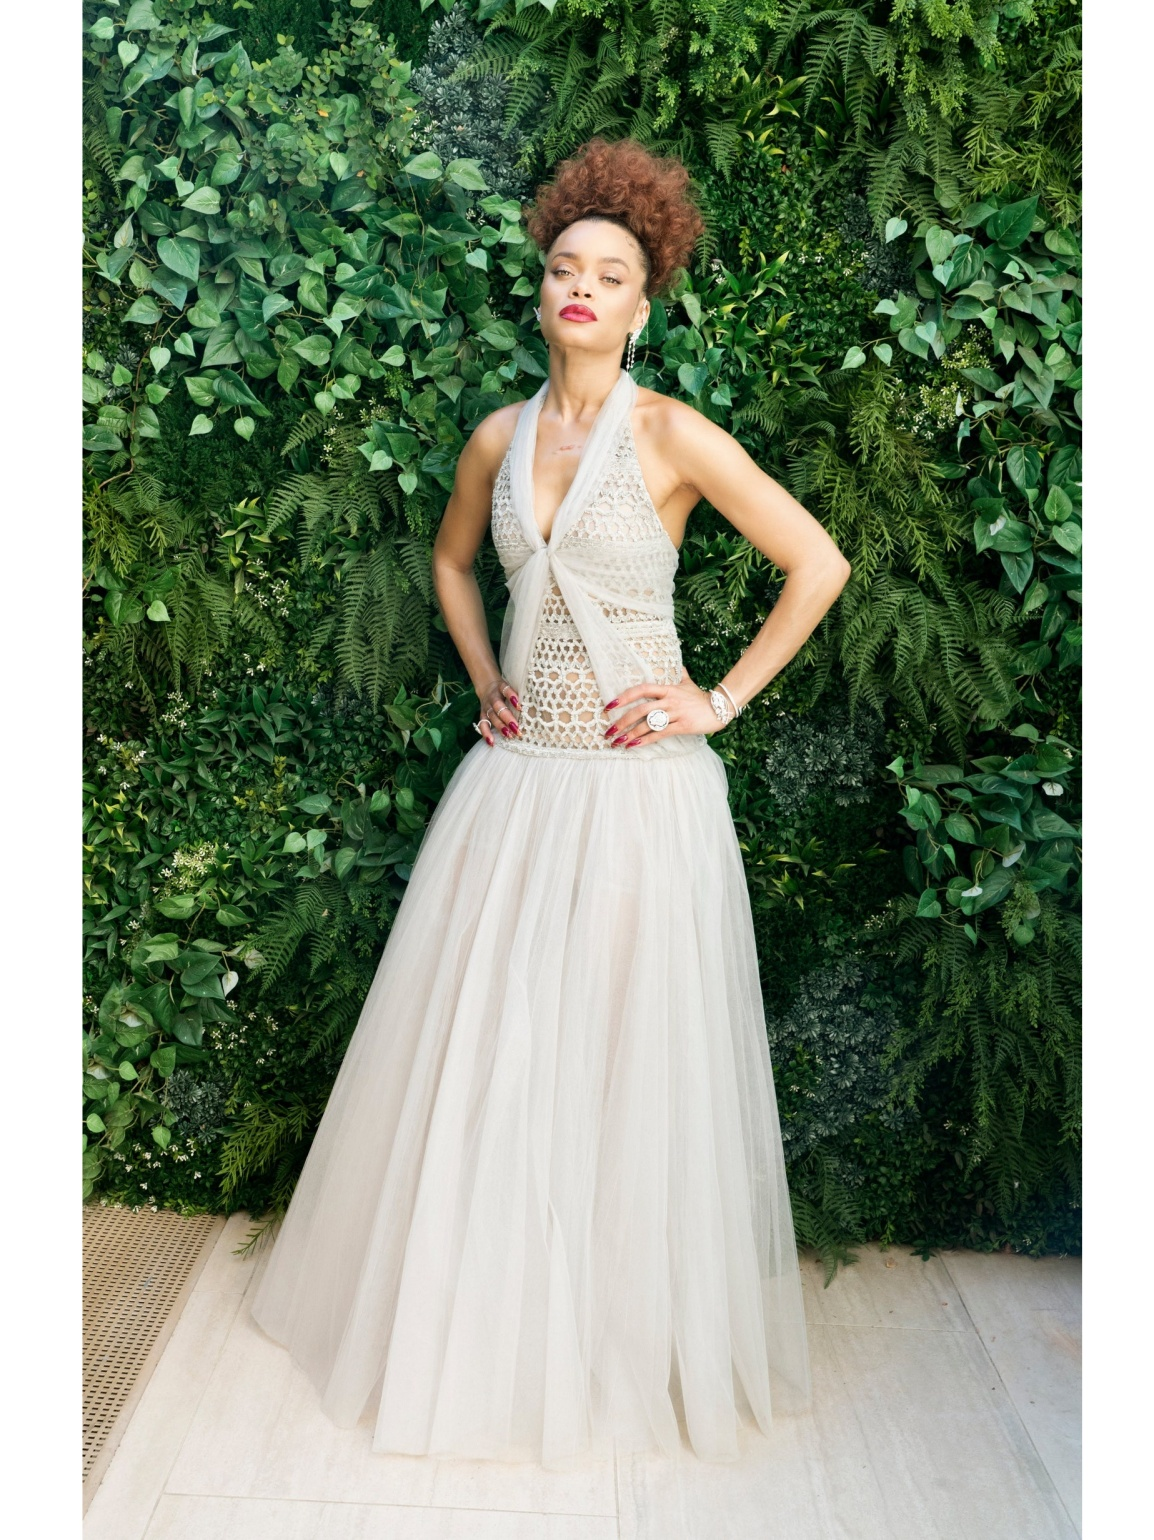 andra-day-chanel-2021-golden-globes